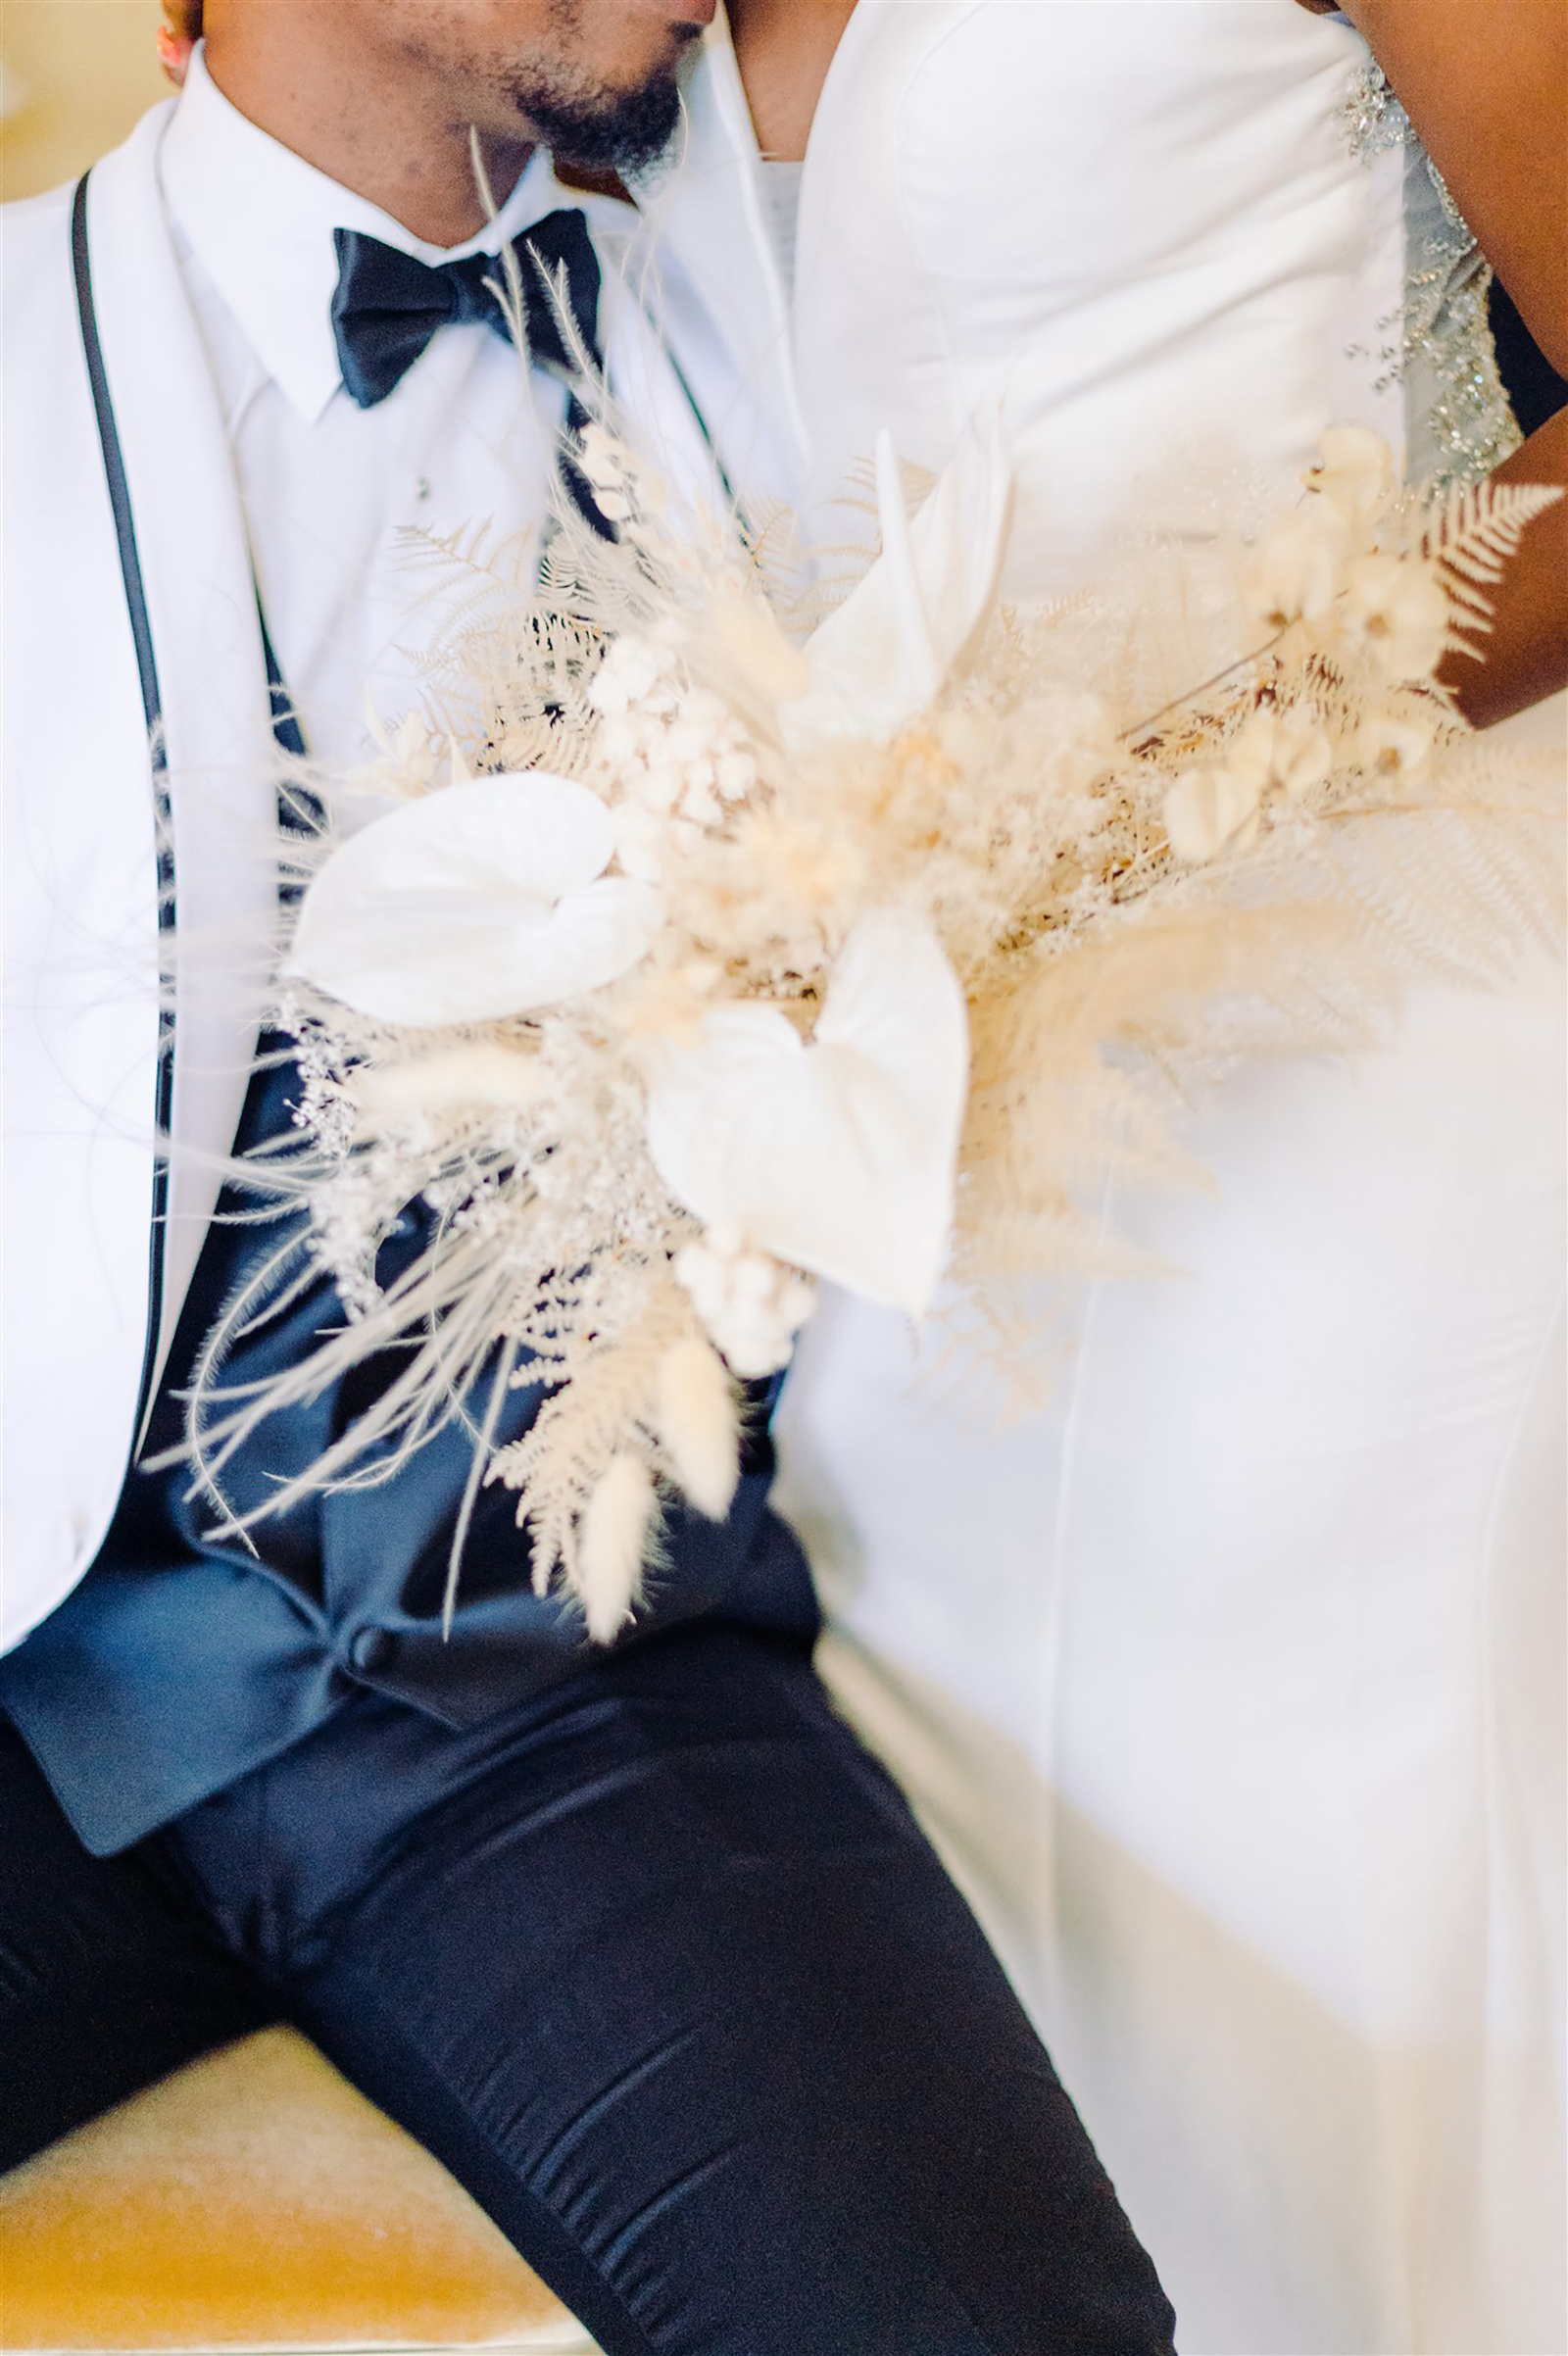 Modern and Boho Groom in White and Black Tuxedo, Bride in Classic Dress Holding Dried Unique White Floral, Feathers and Foliage Bouquet | Tampa Bay Wedding Planner, Designer, Florist John Campbell Weddings